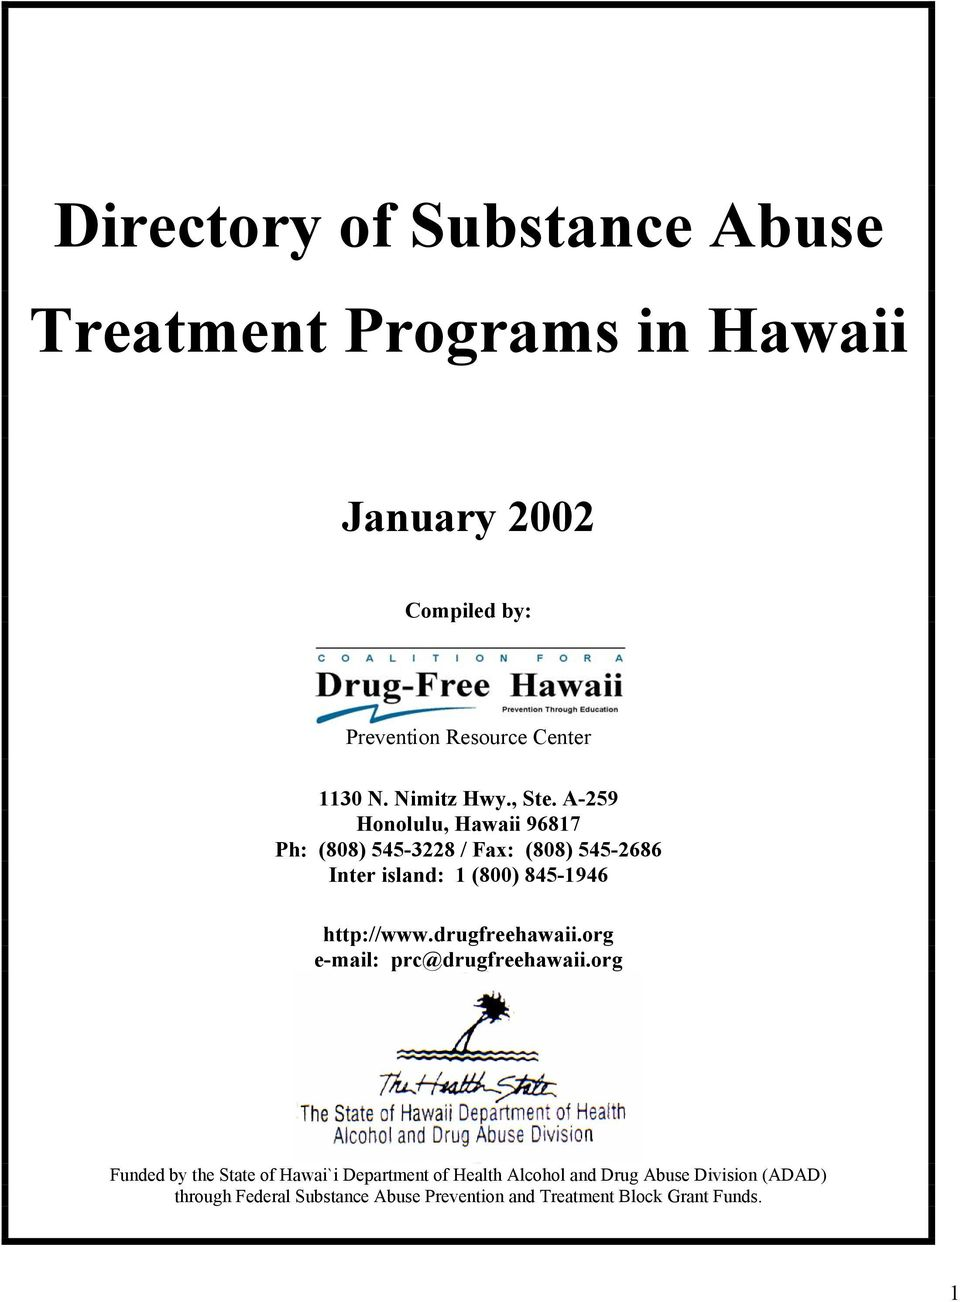 A-259 Ph: (808) 545-3228 / Fax: (808) 545-2686 Inter island: 1 (800) 845-1946 http://www.drugfreehawaii.